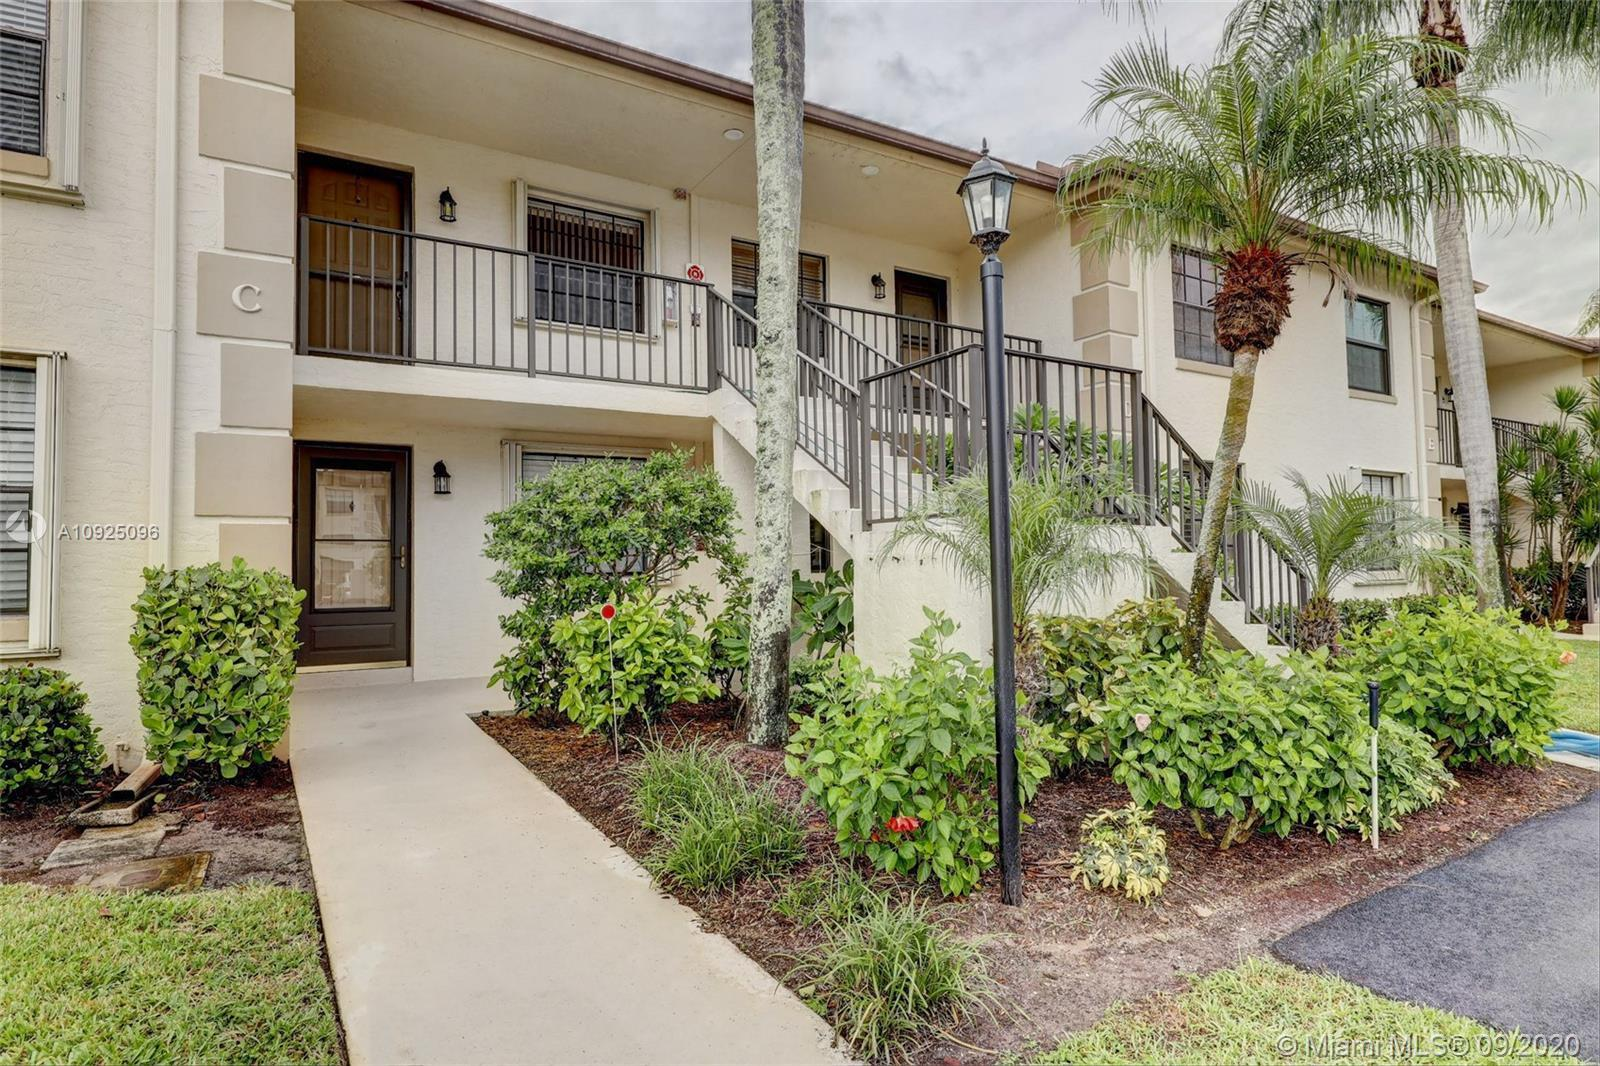 Immaculate, 2/2, 1st Floor unit, on the golf course,... move-in ready! This is an excellent opportun